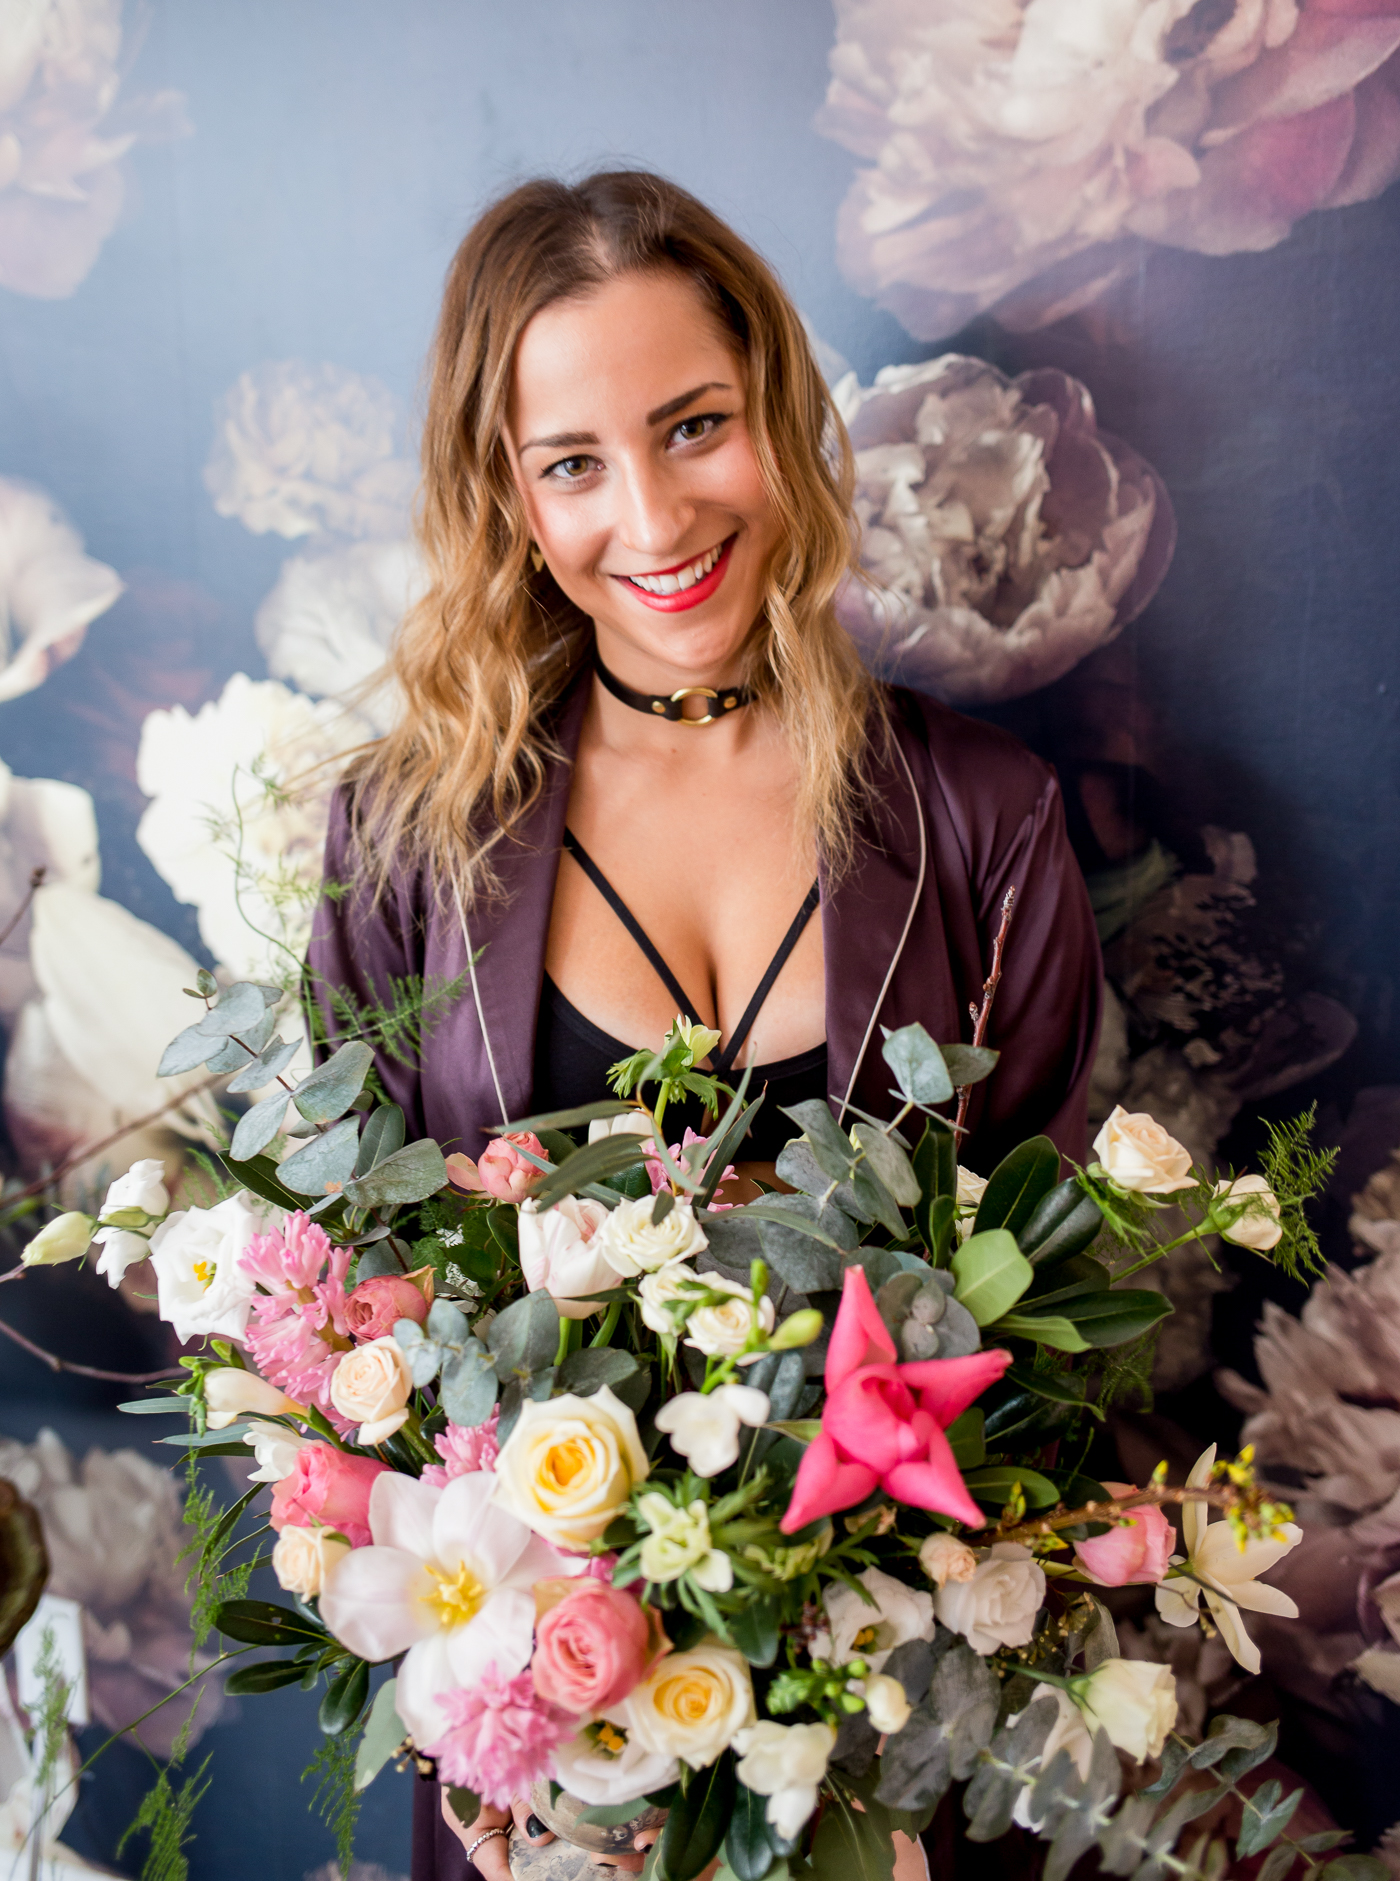 Toronto blogger photoshoot with Stole My Heart, sharing a floral arrangement from Wildnorth Flowers